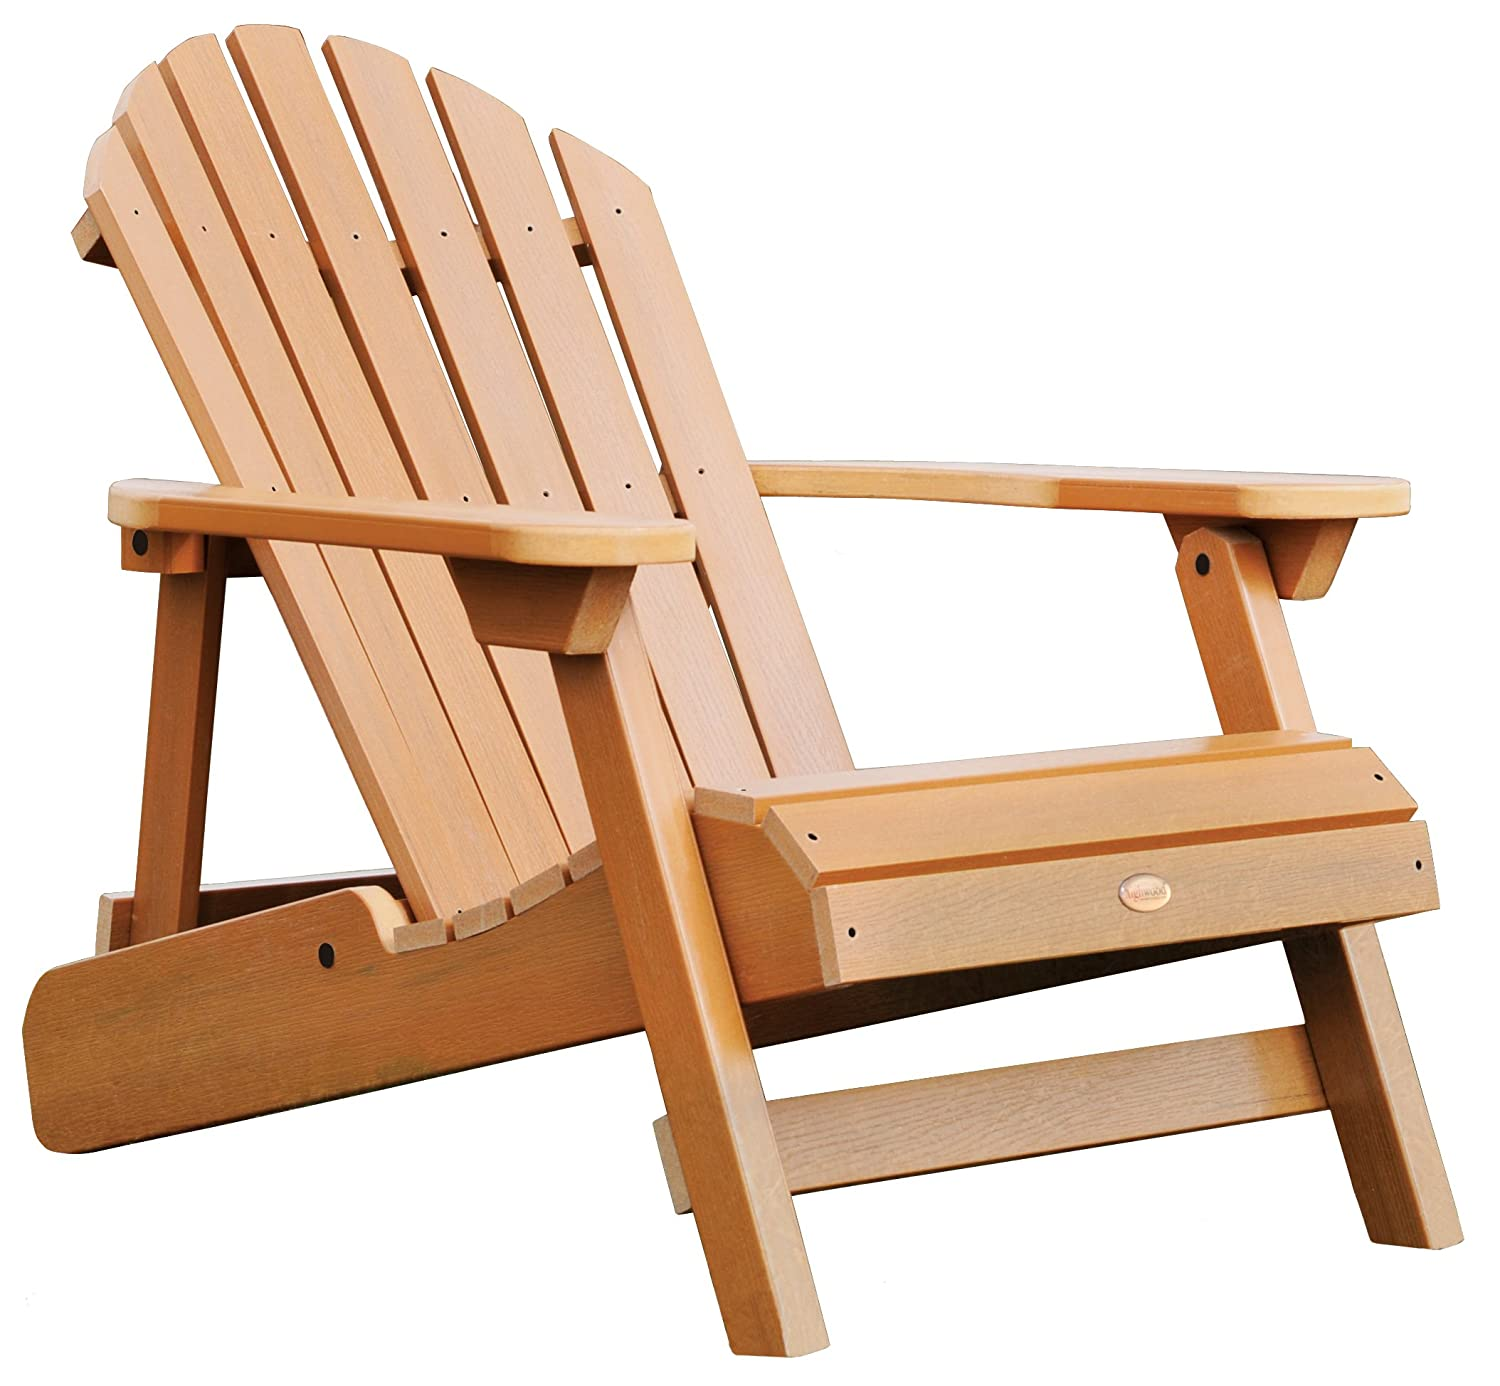 Amazon.com  Highwood Hamilton Folding and Reclining Adirondack Chair Adult Size Toffee  Costco Adirondack Chairs  Garden u0026 Outdoor  sc 1 st  Amazon.com : wooden reclining garden chairs - islam-shia.org